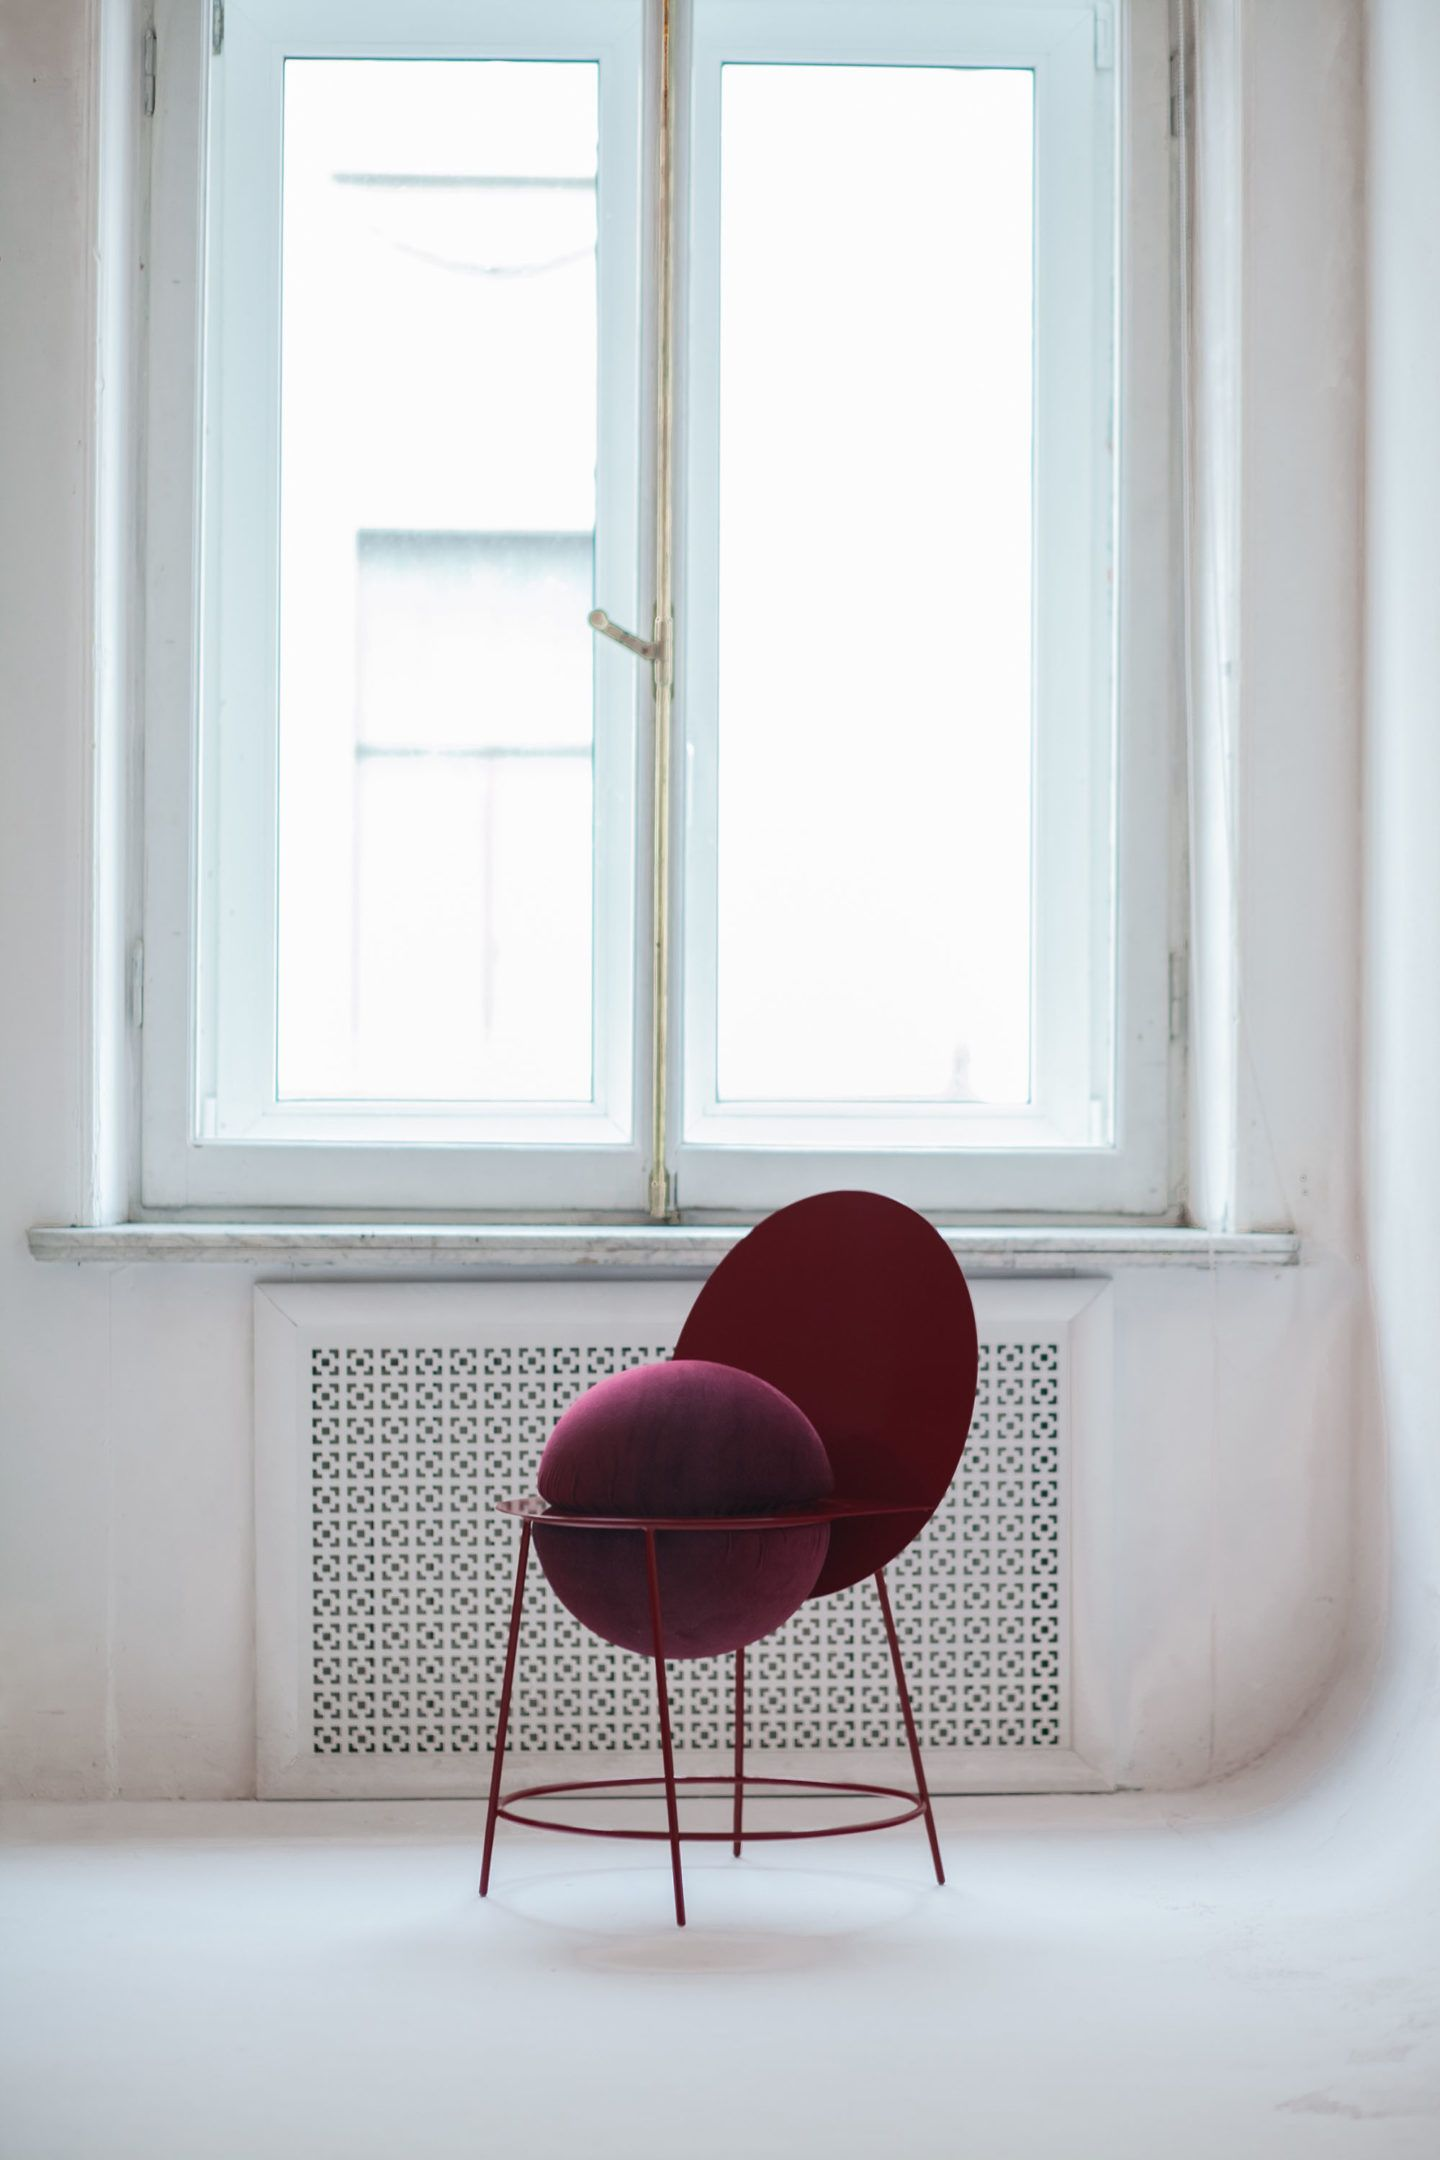 IGNANT-Design-Unusual-Chairs-1